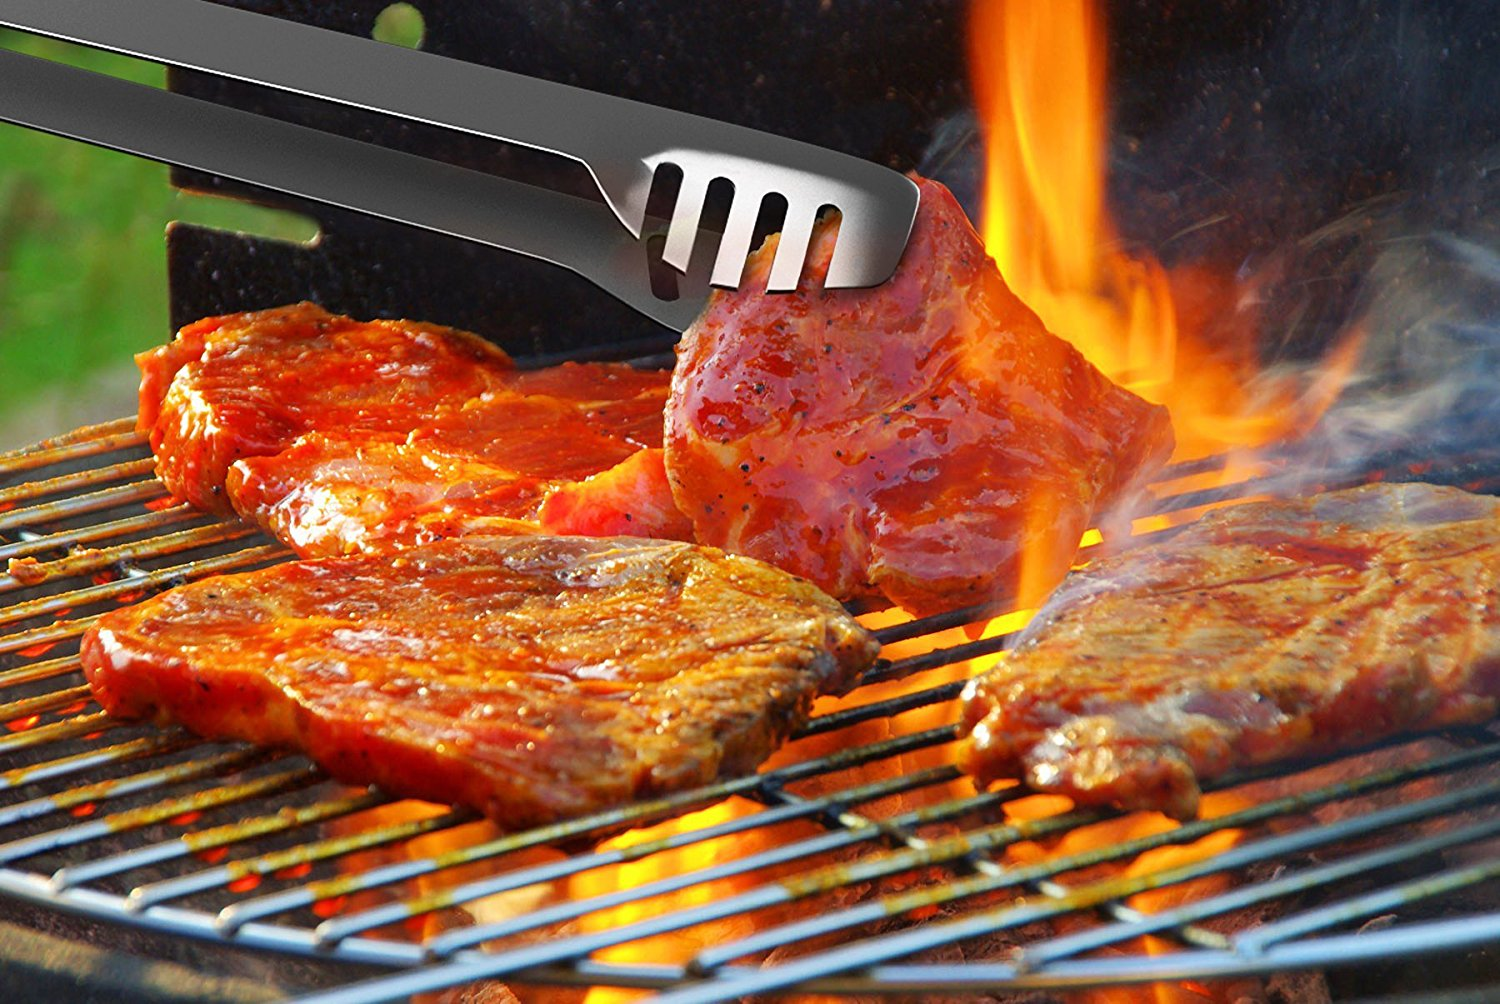 Barbecue grill ideas